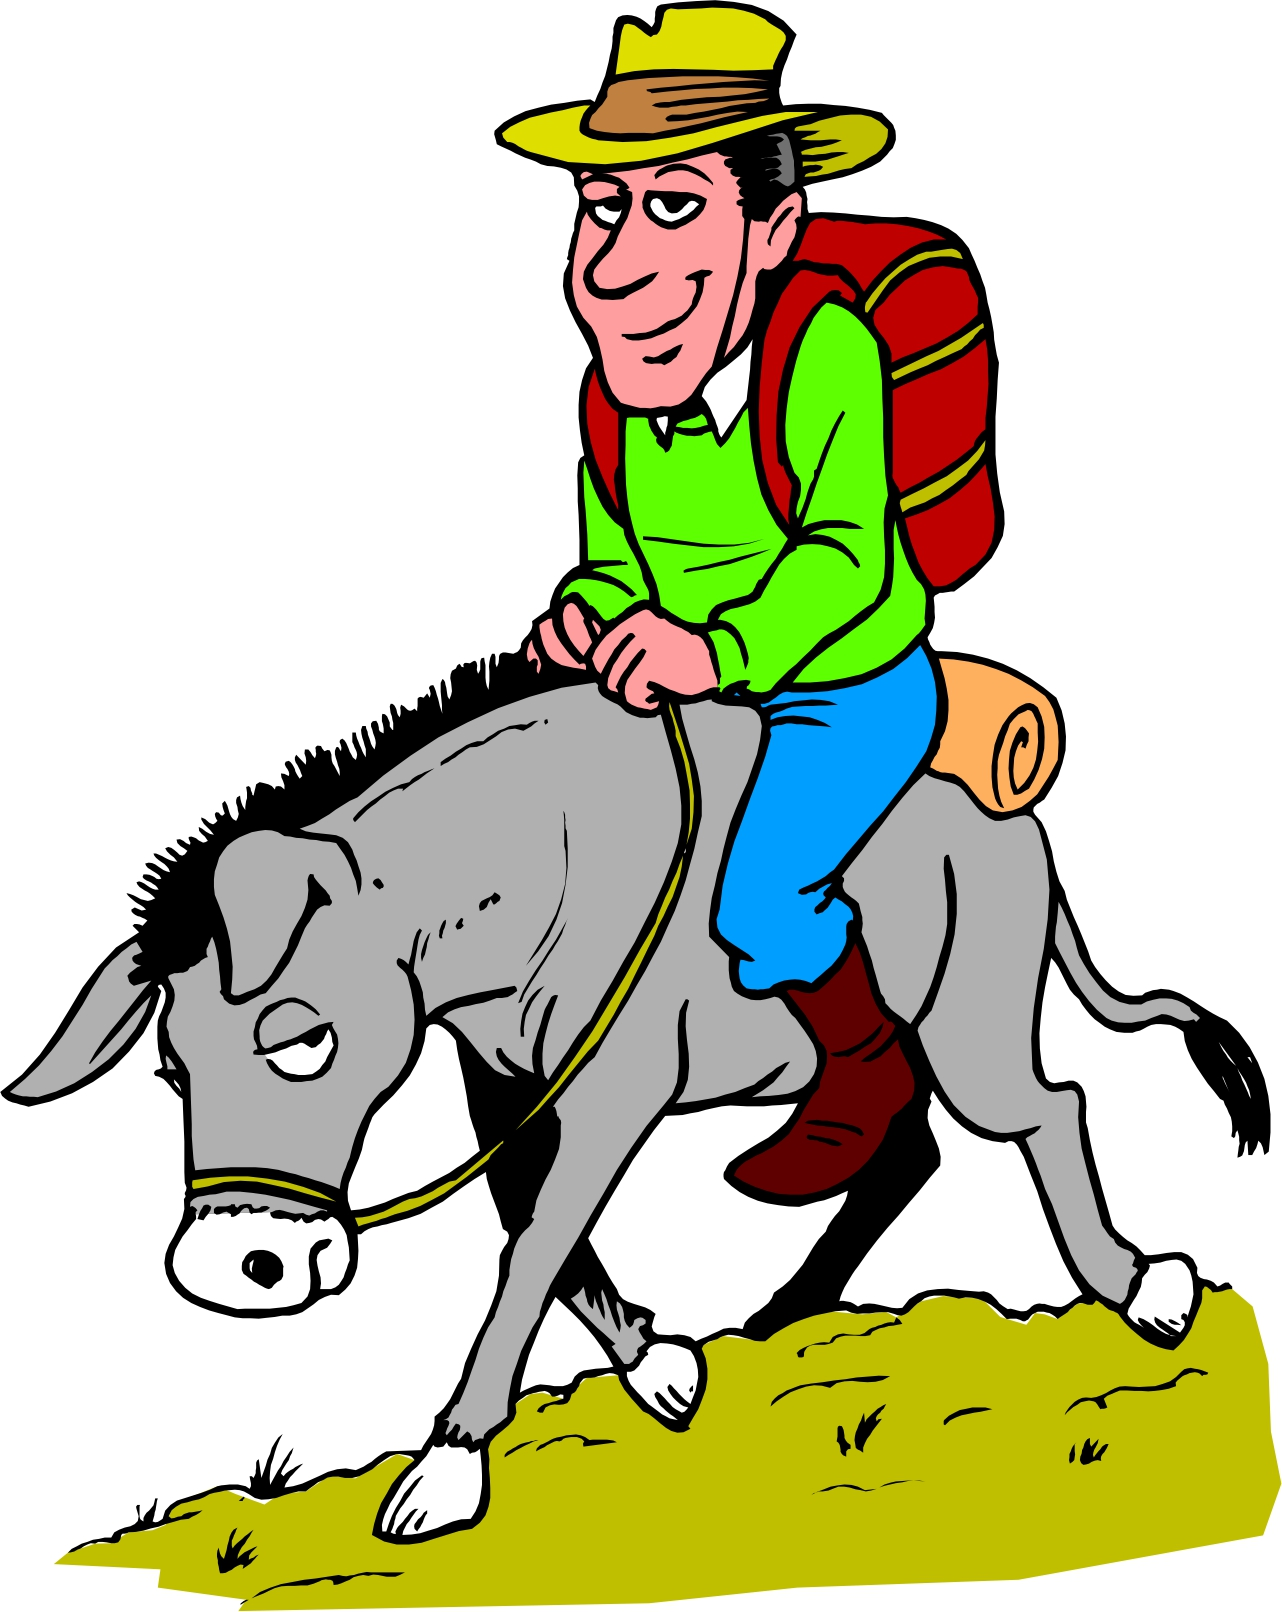 Boy and man riding mule clipart.